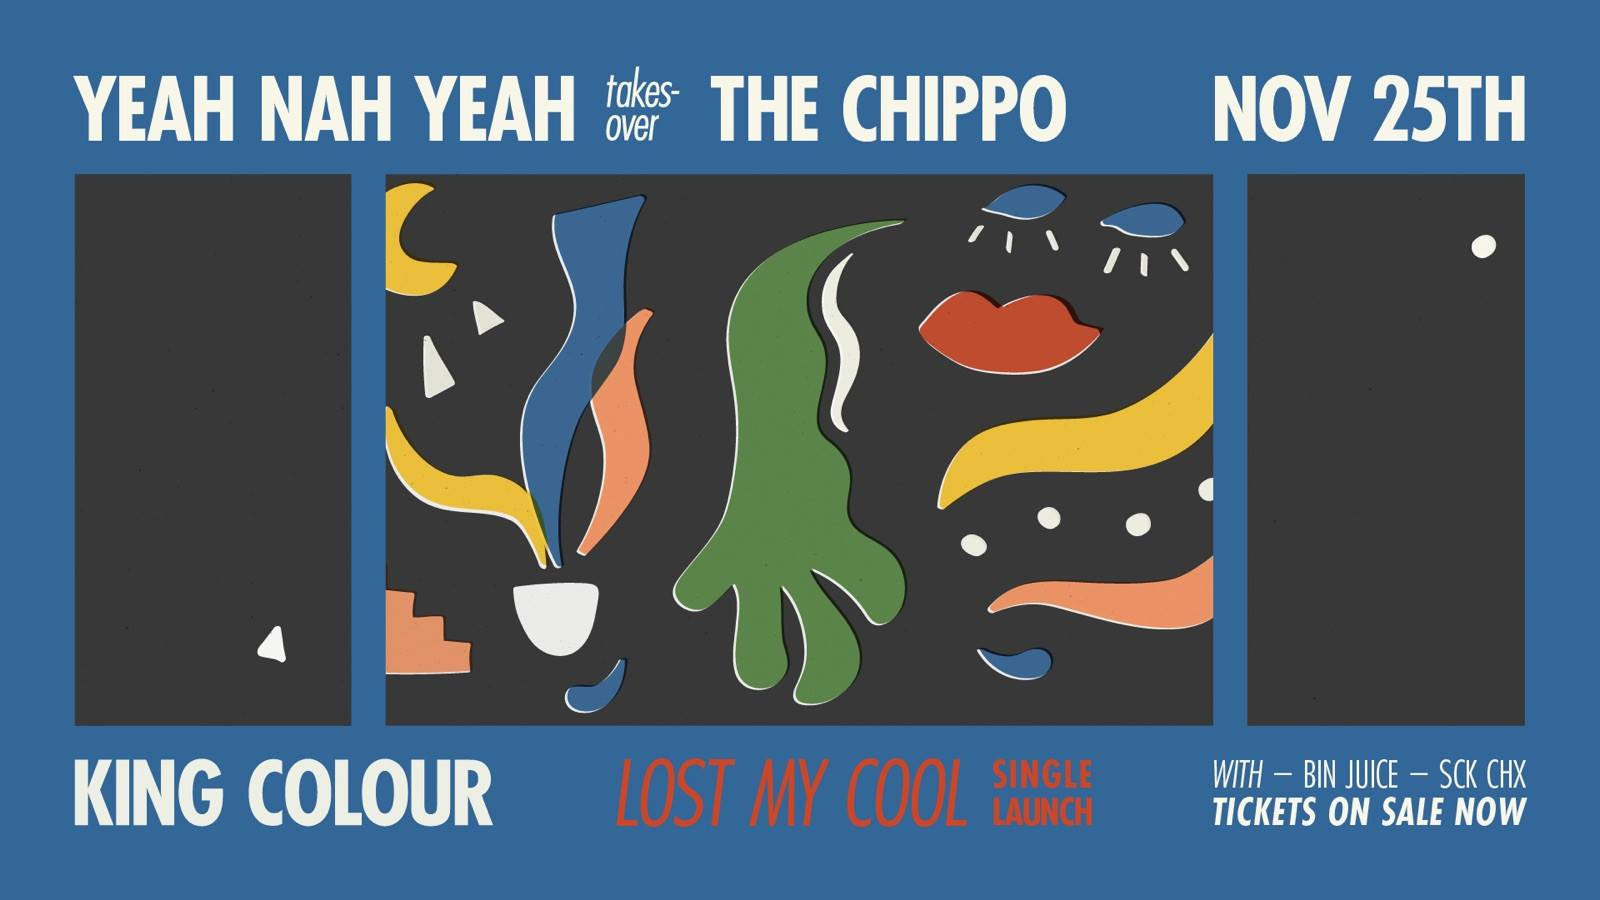 We are taking over the Chippo hotel for King Colour's Lost My Cool single launch!  Listen: http://radi.al/LostMyCool  Watch: https://youtu.be/JprGE-nJn3s   And as you know it is not going to be any old gig. We are bringing our usual ingredients to make you a pavlova of a good time.  Bands  King Colour   Bin Juice   SCK CHX   DJs  Happy Mag DJs  Yeah Nah Yeah DJs  WAWA PR DJs  Live Art  Morus Quin   Upstairs there will be a record stall from Wawa Records and both levels will have wax spinning till close.  So join us for a night at the Chippo for King Colour's first release off their upcoming EP Mood Lighting.